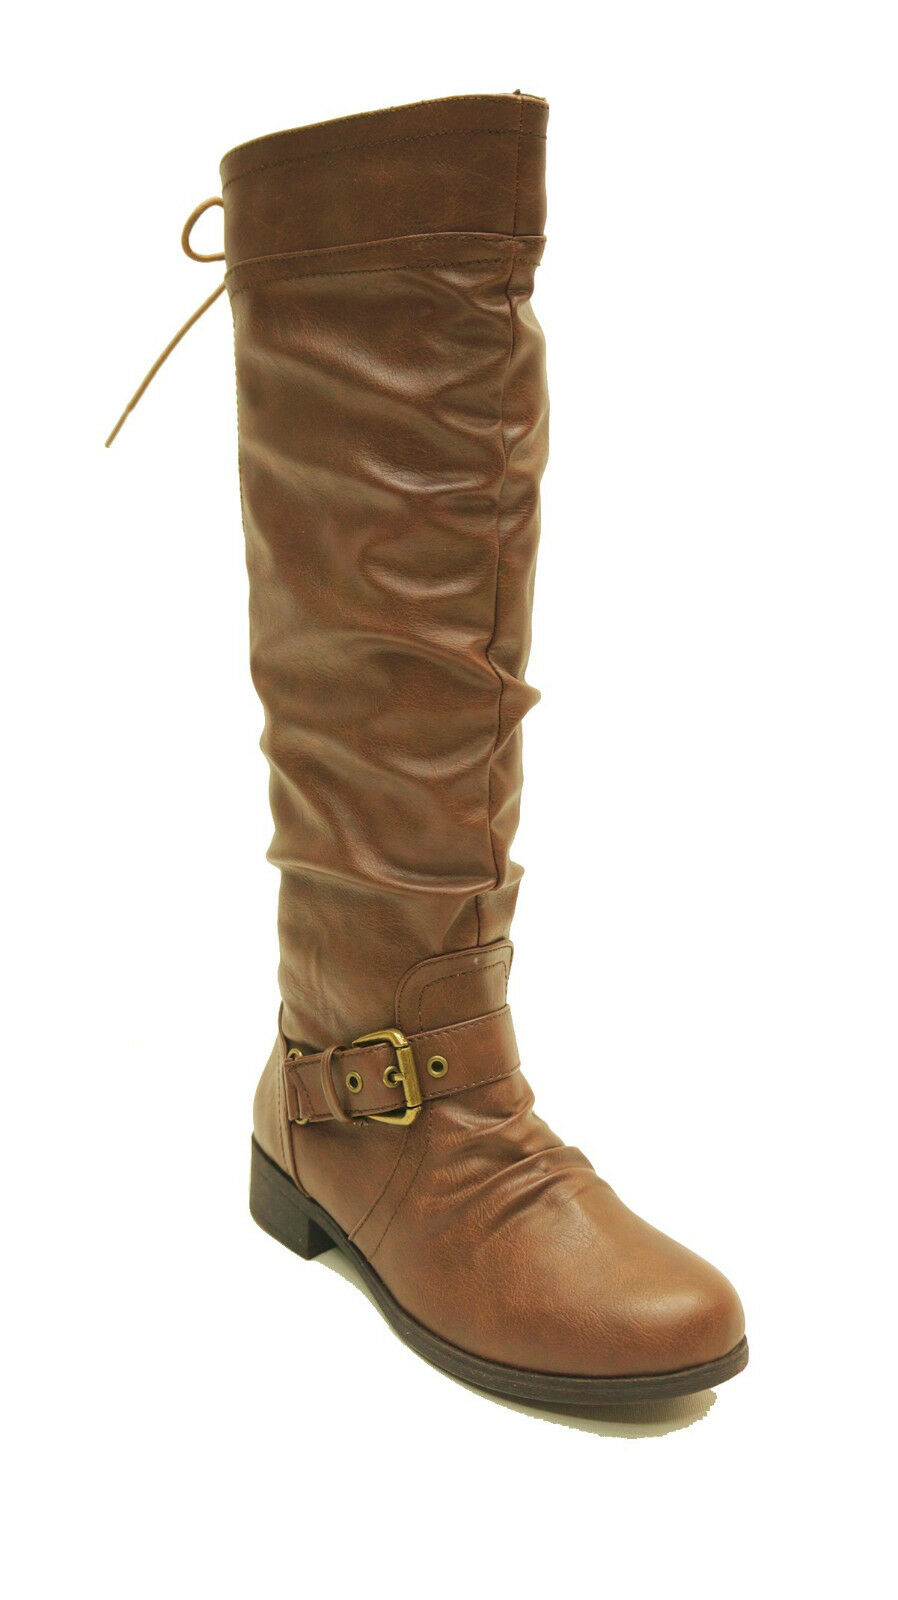 XOXO Brown Faux Leather Tall Boots MARCHER Women's Shoes US 6